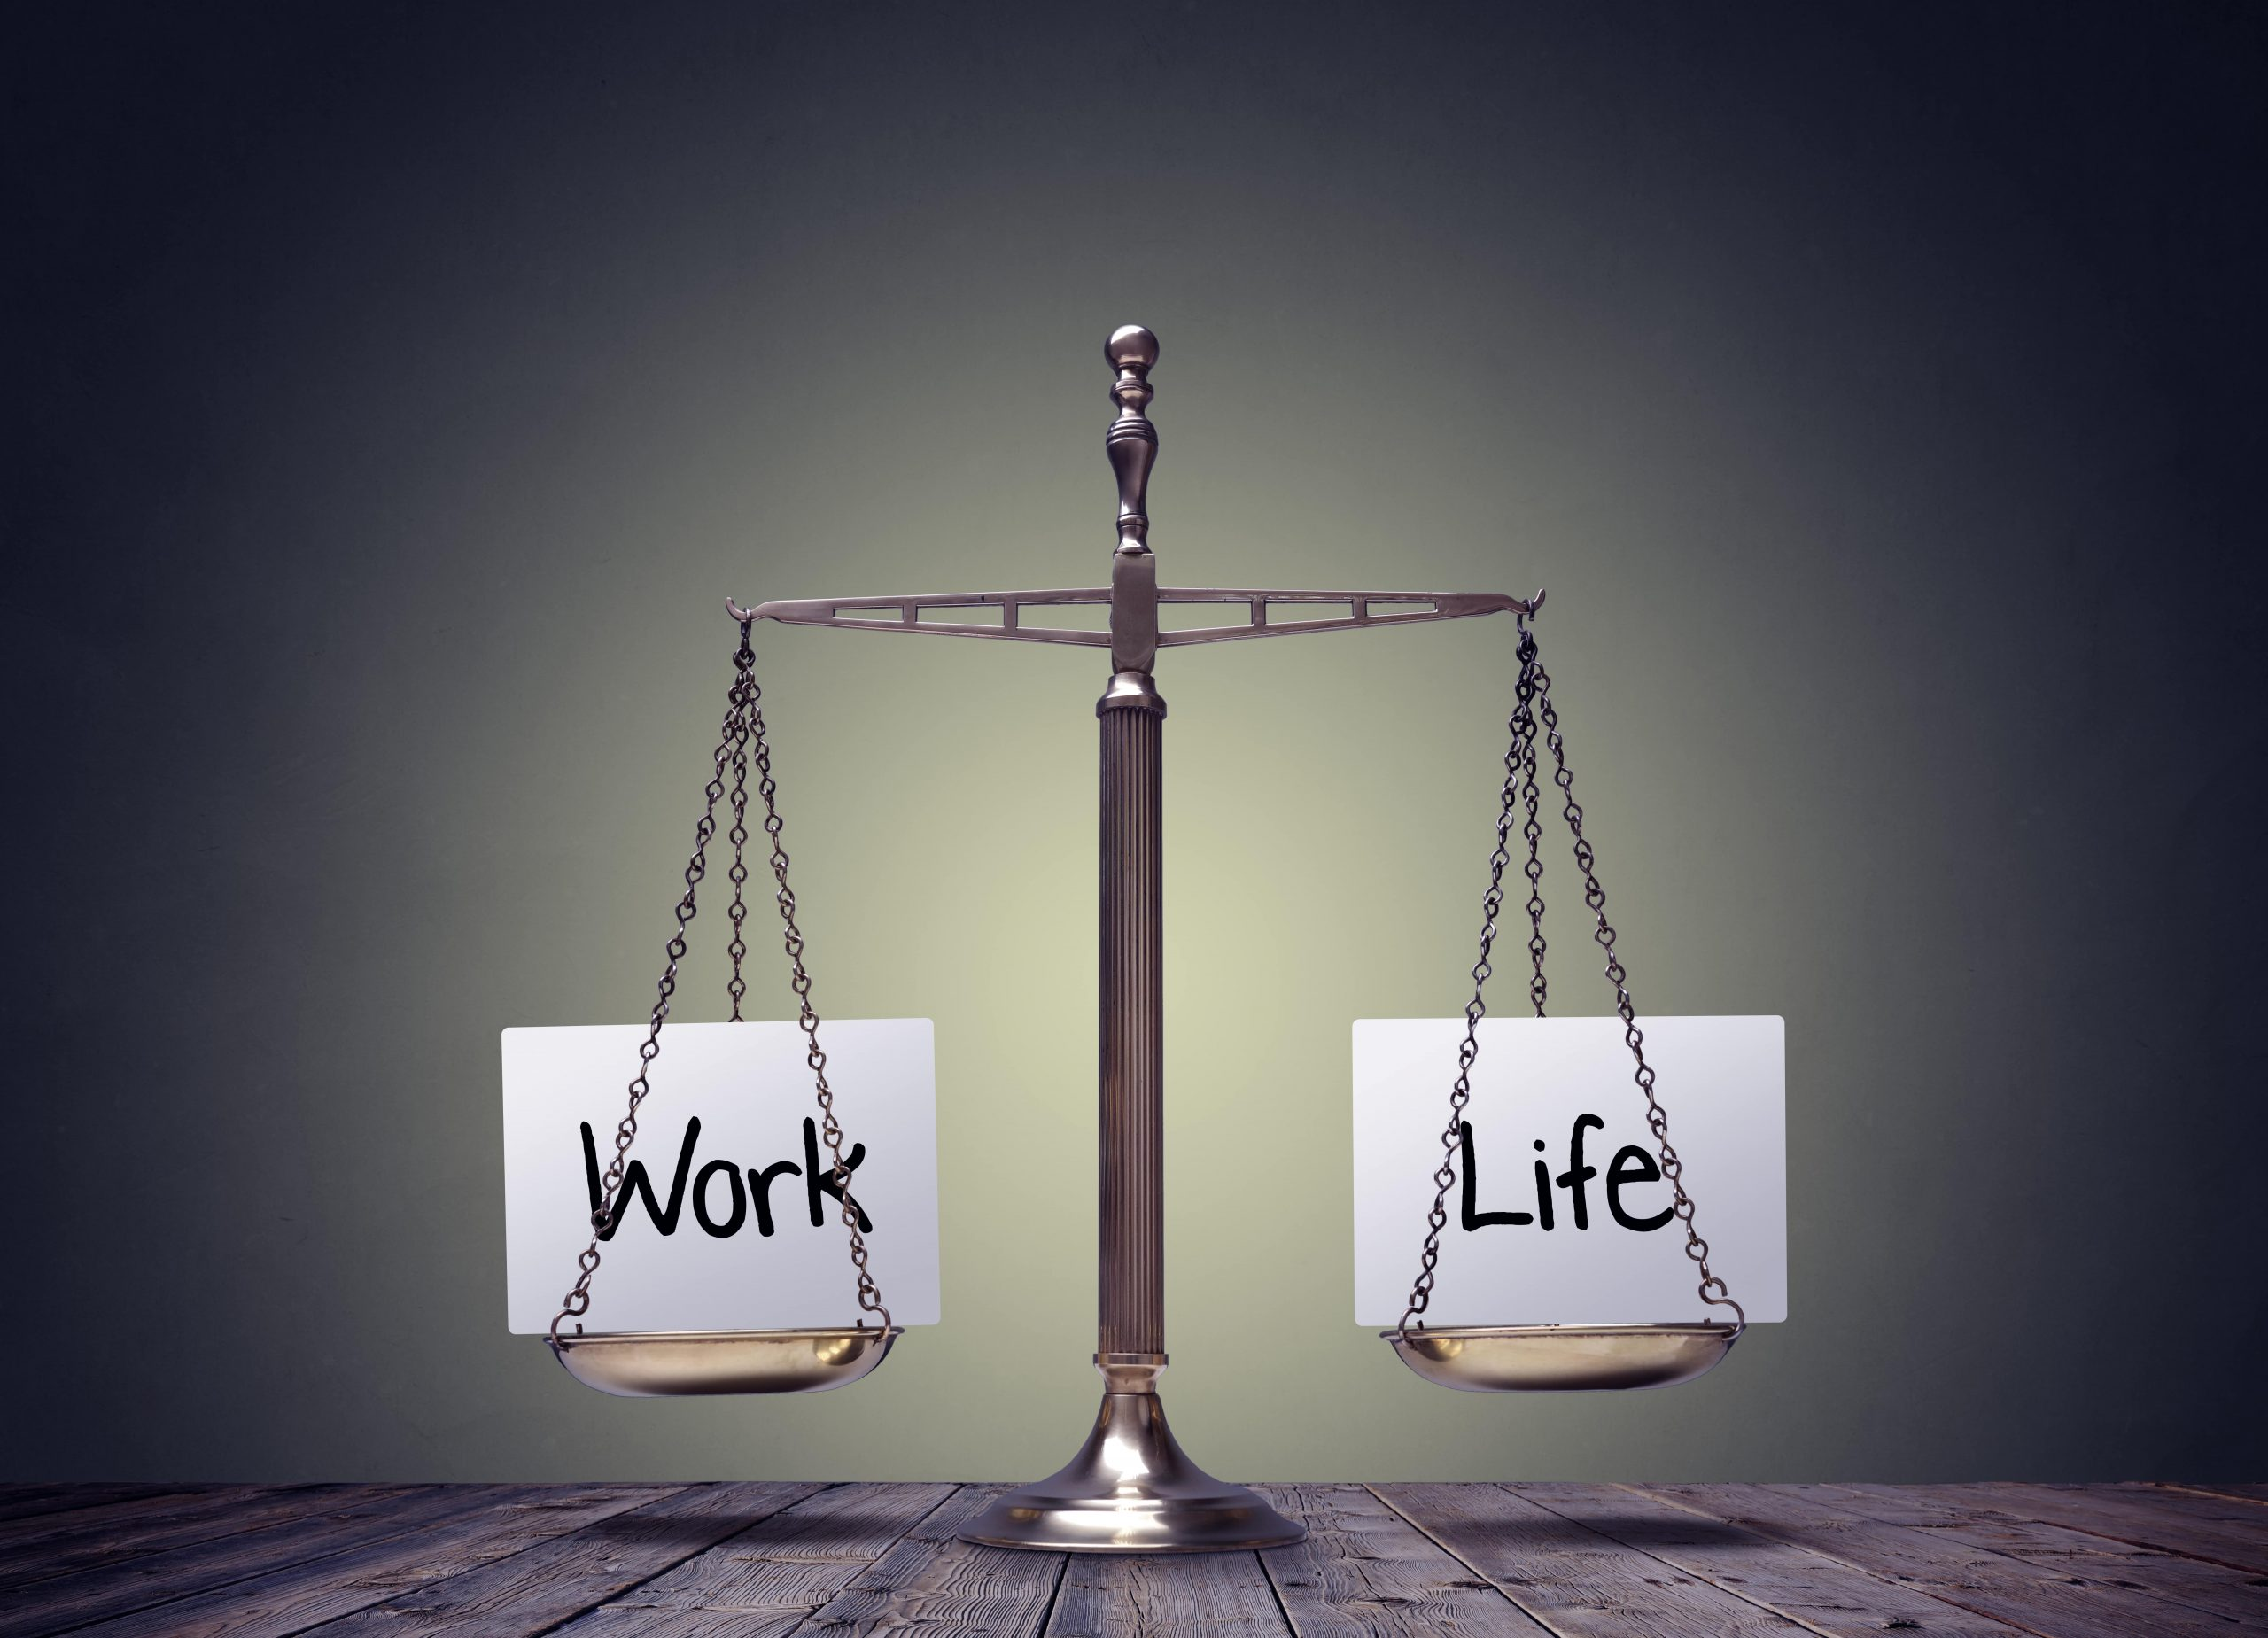 Work-life. What's the right balance?